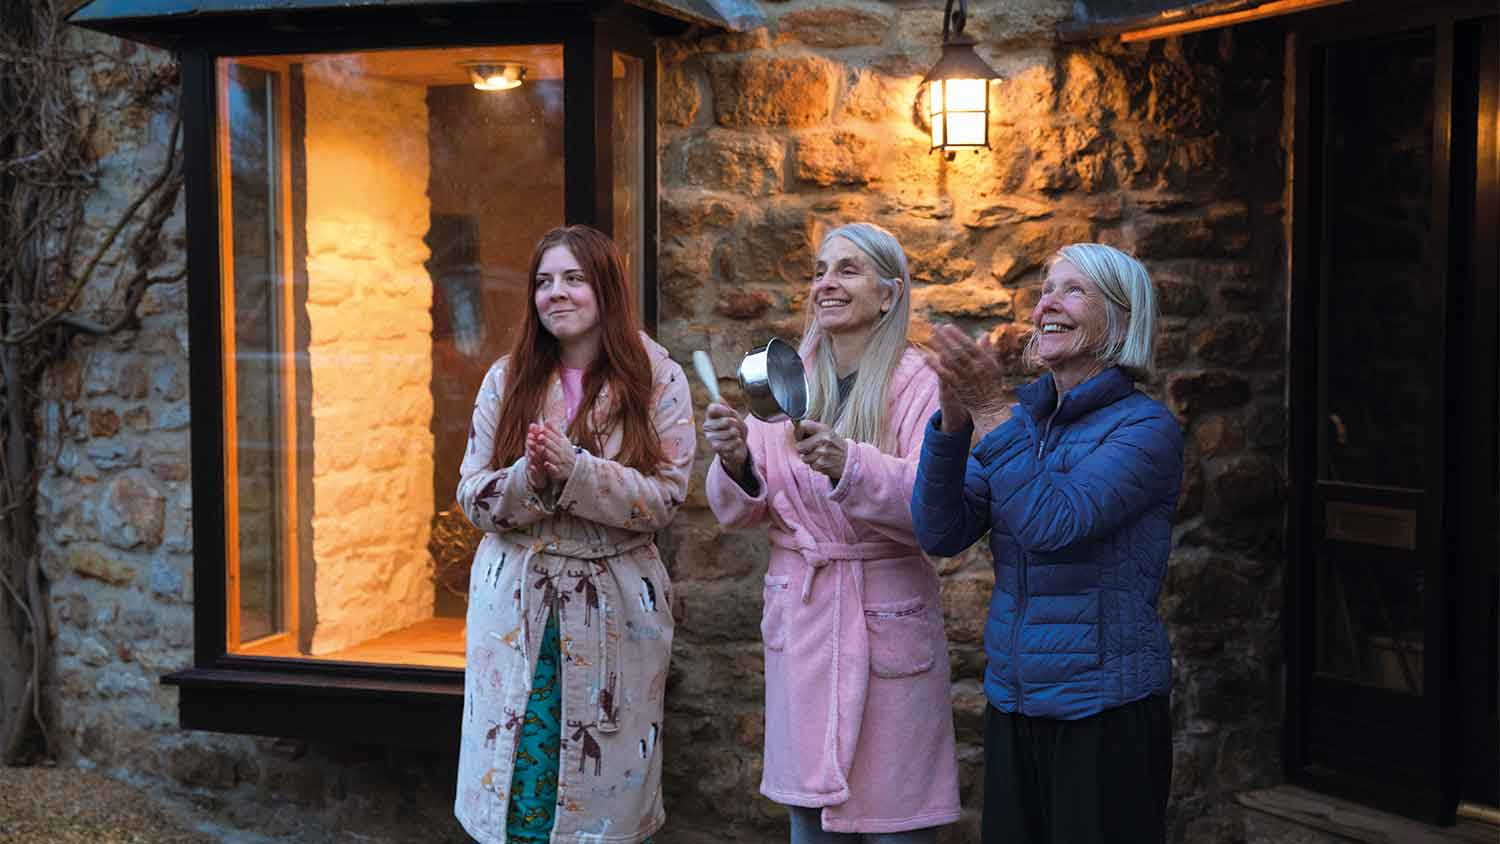 Three women applauding key workers outside their home